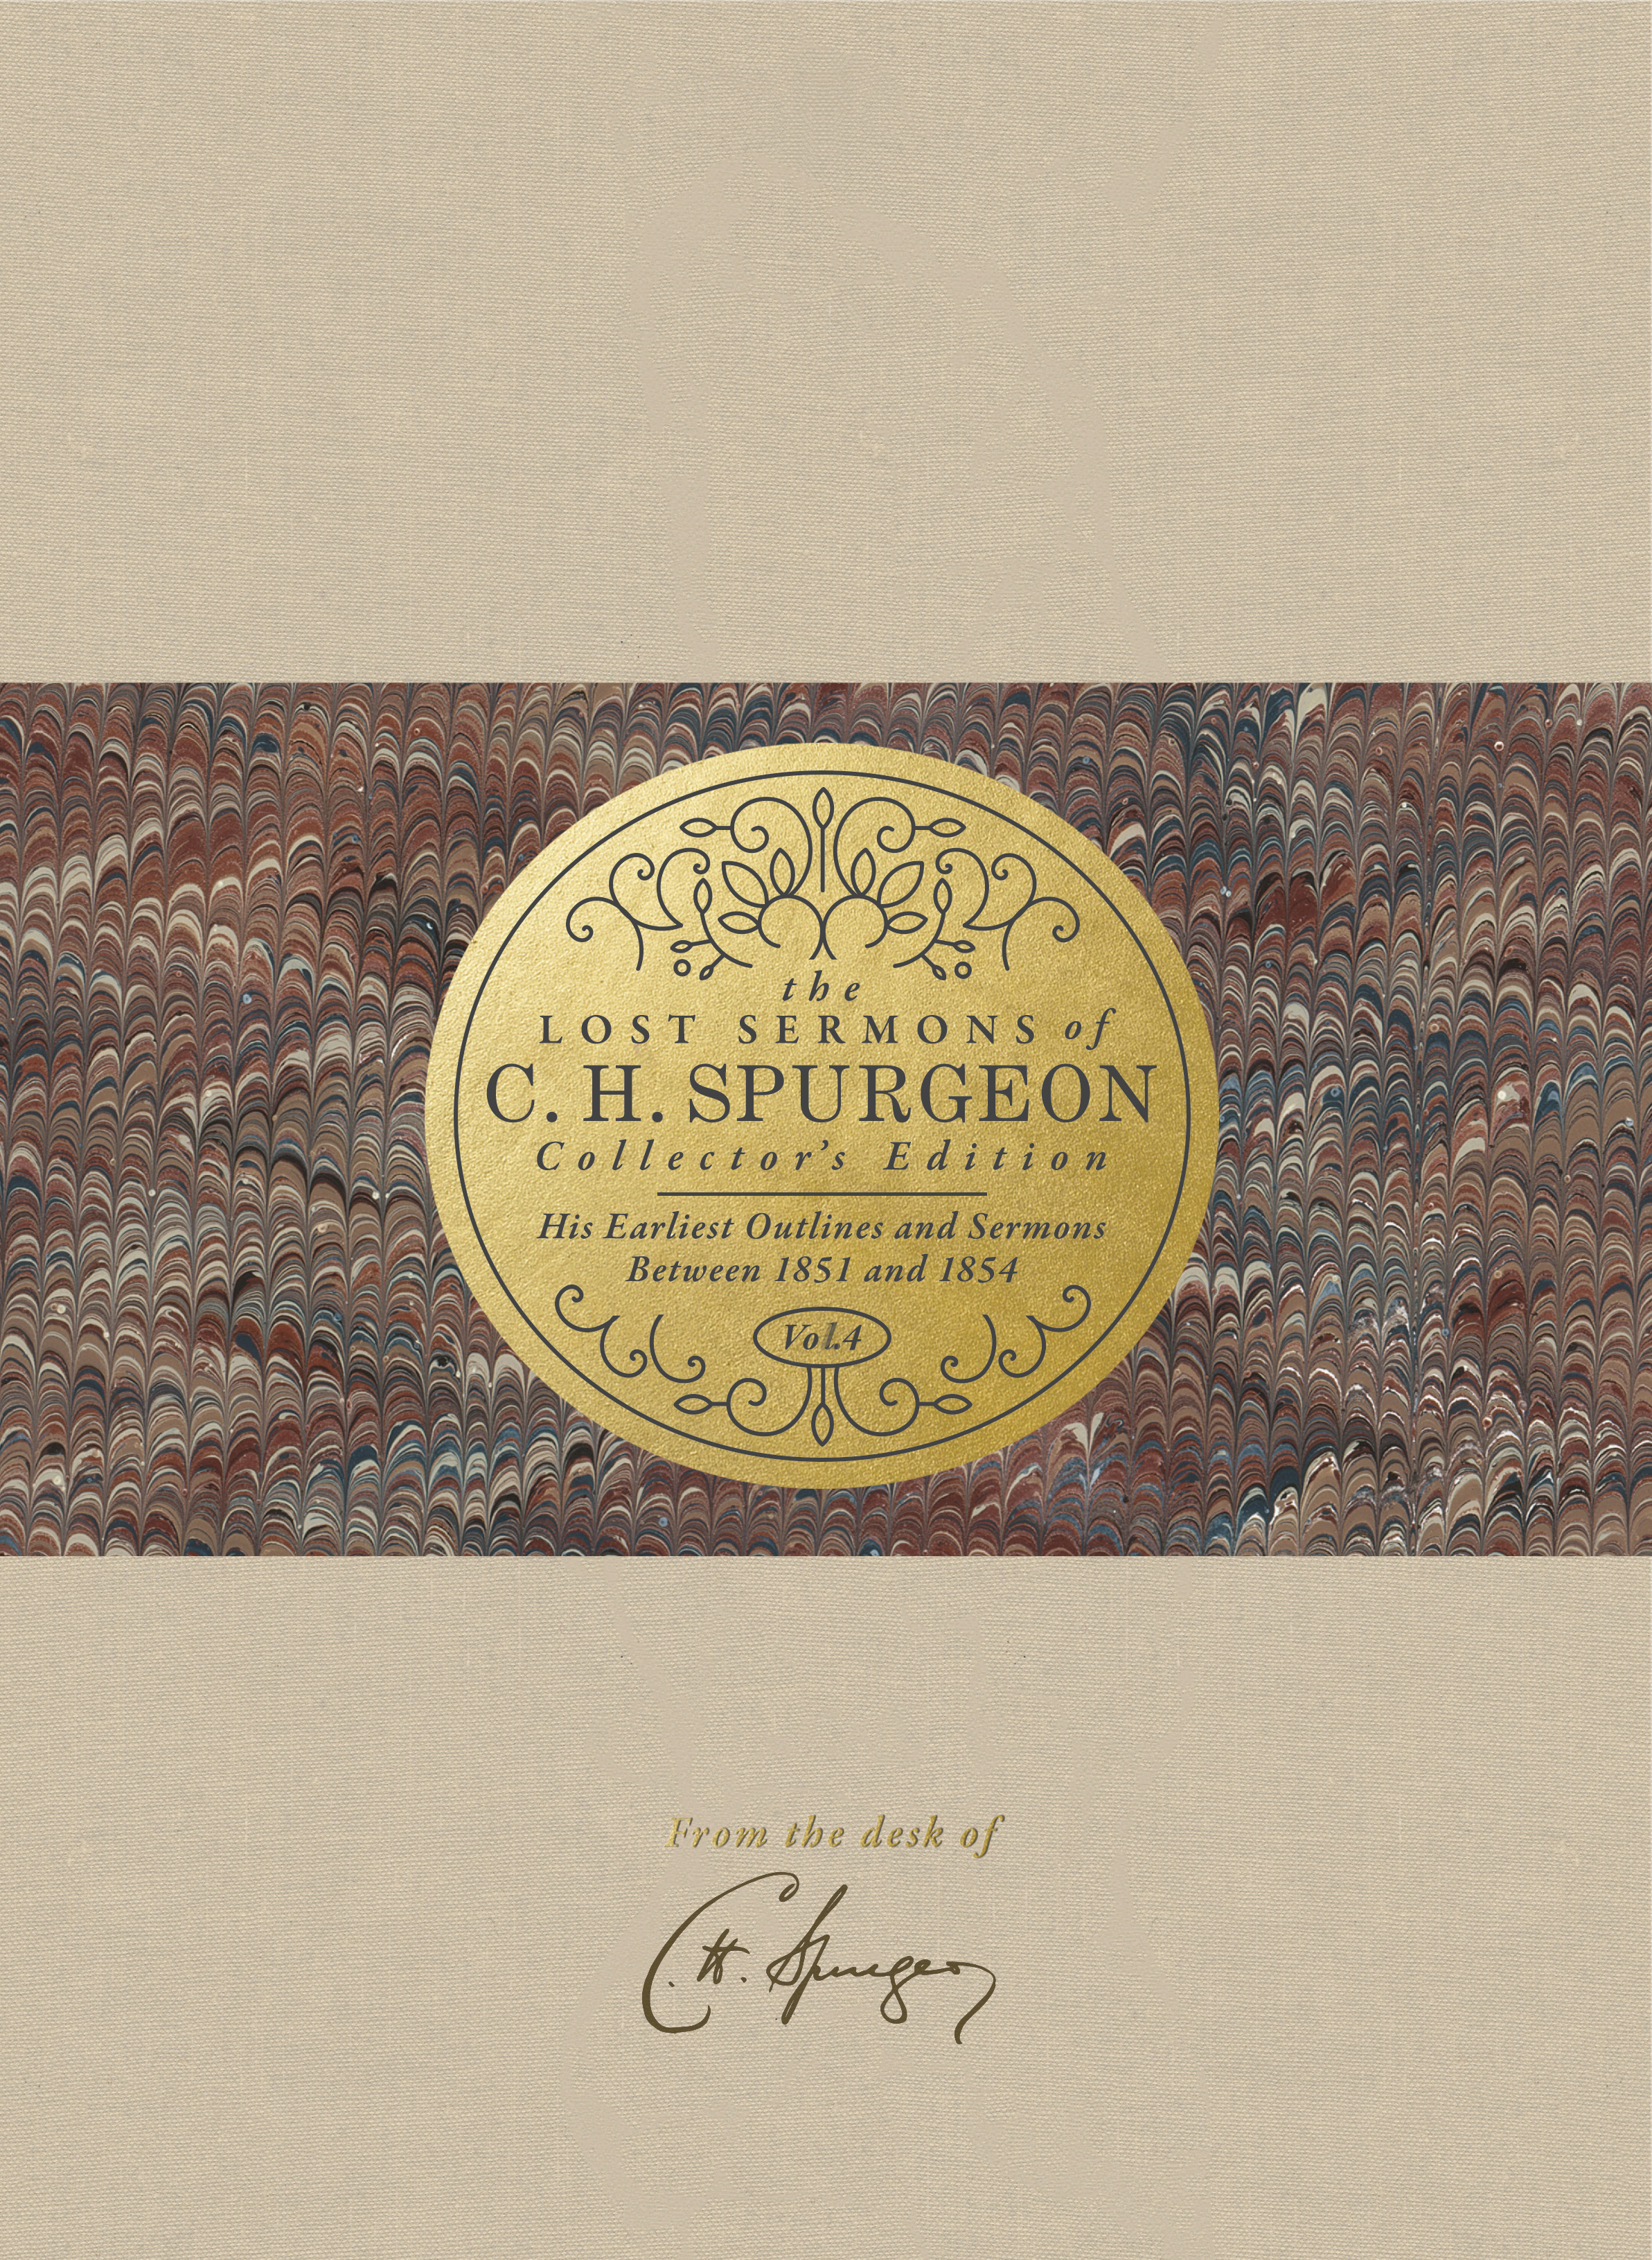 The Lost Sermons of C. H. Spurgeon Volume IV — Collector's Edition: His Earliest Outlines and Sermons Between 1851 and 1854